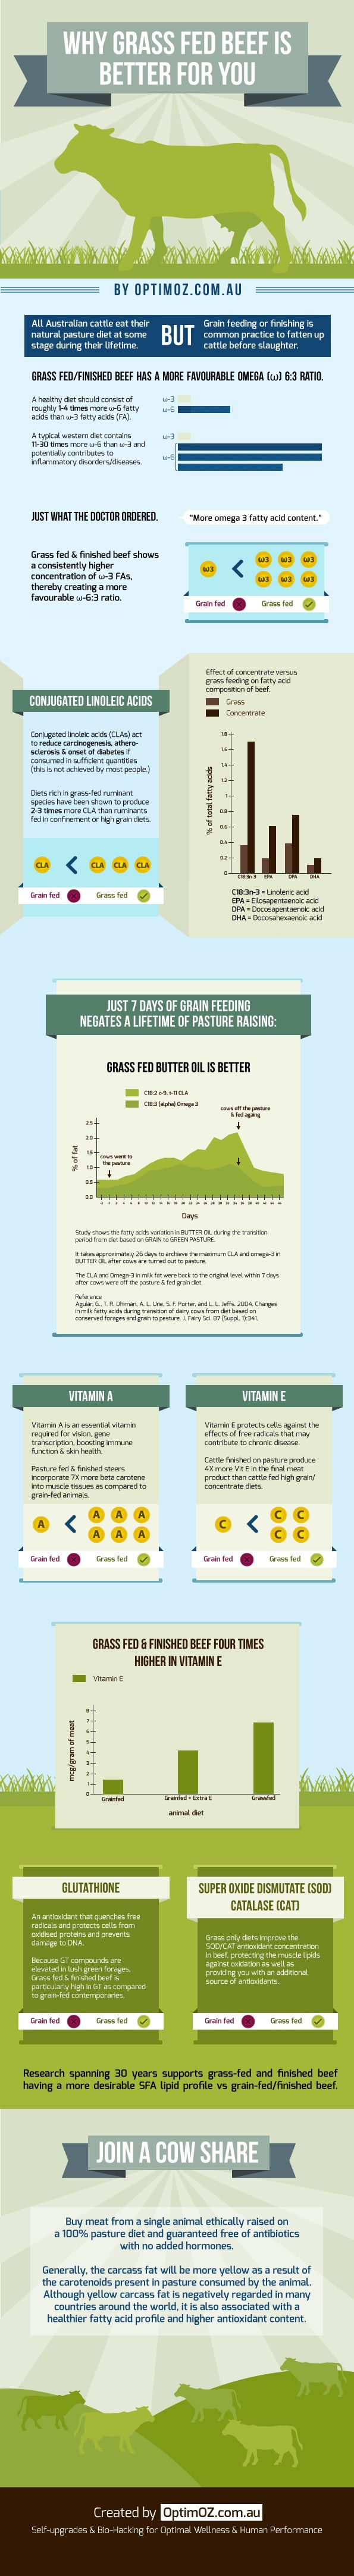 Buy organic beef - Why Grass Fed Beef Is Better For You Infographic